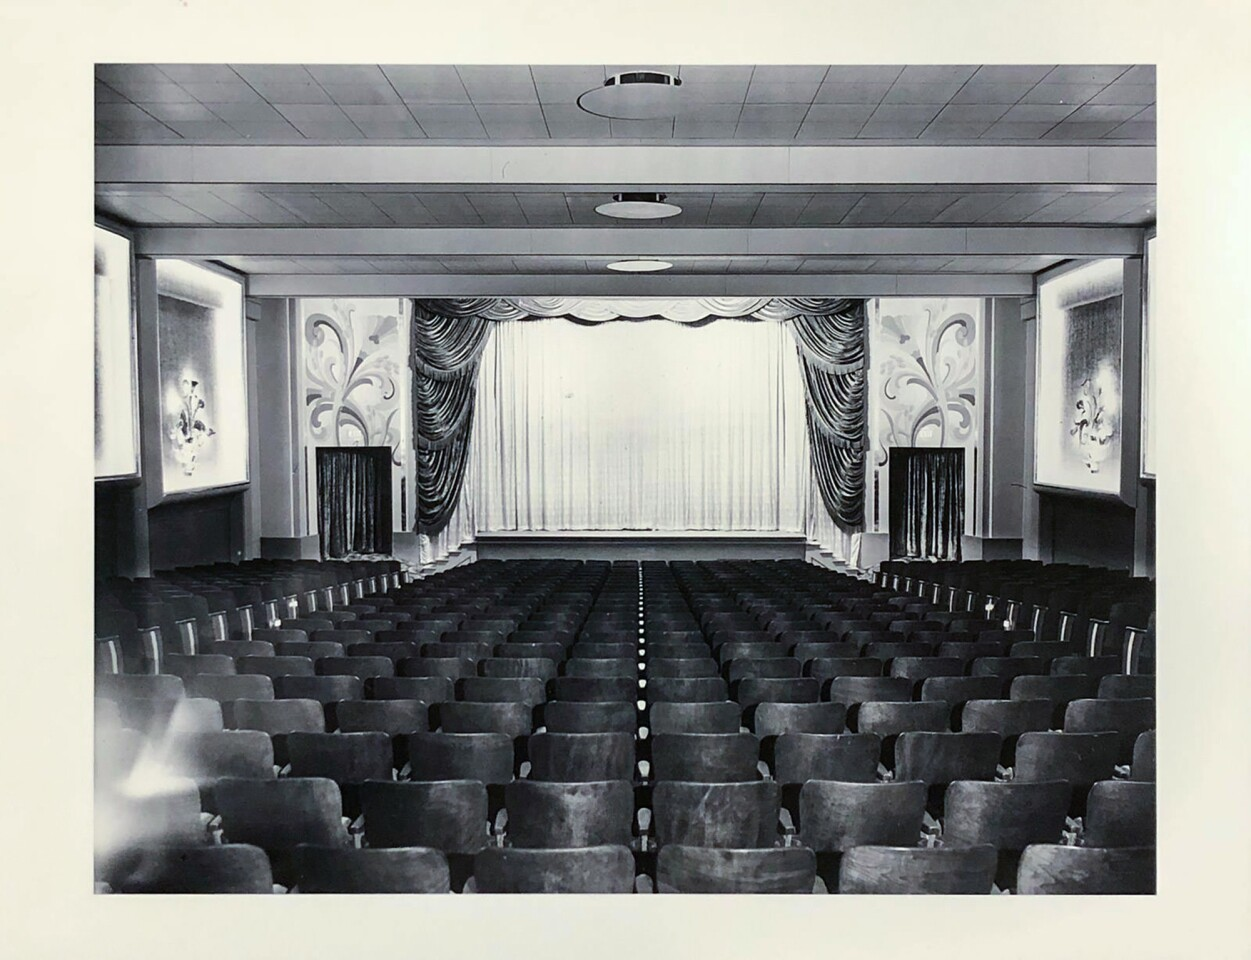 Photo Gallery: Renovation of the Bay Theatre in Seal Beach